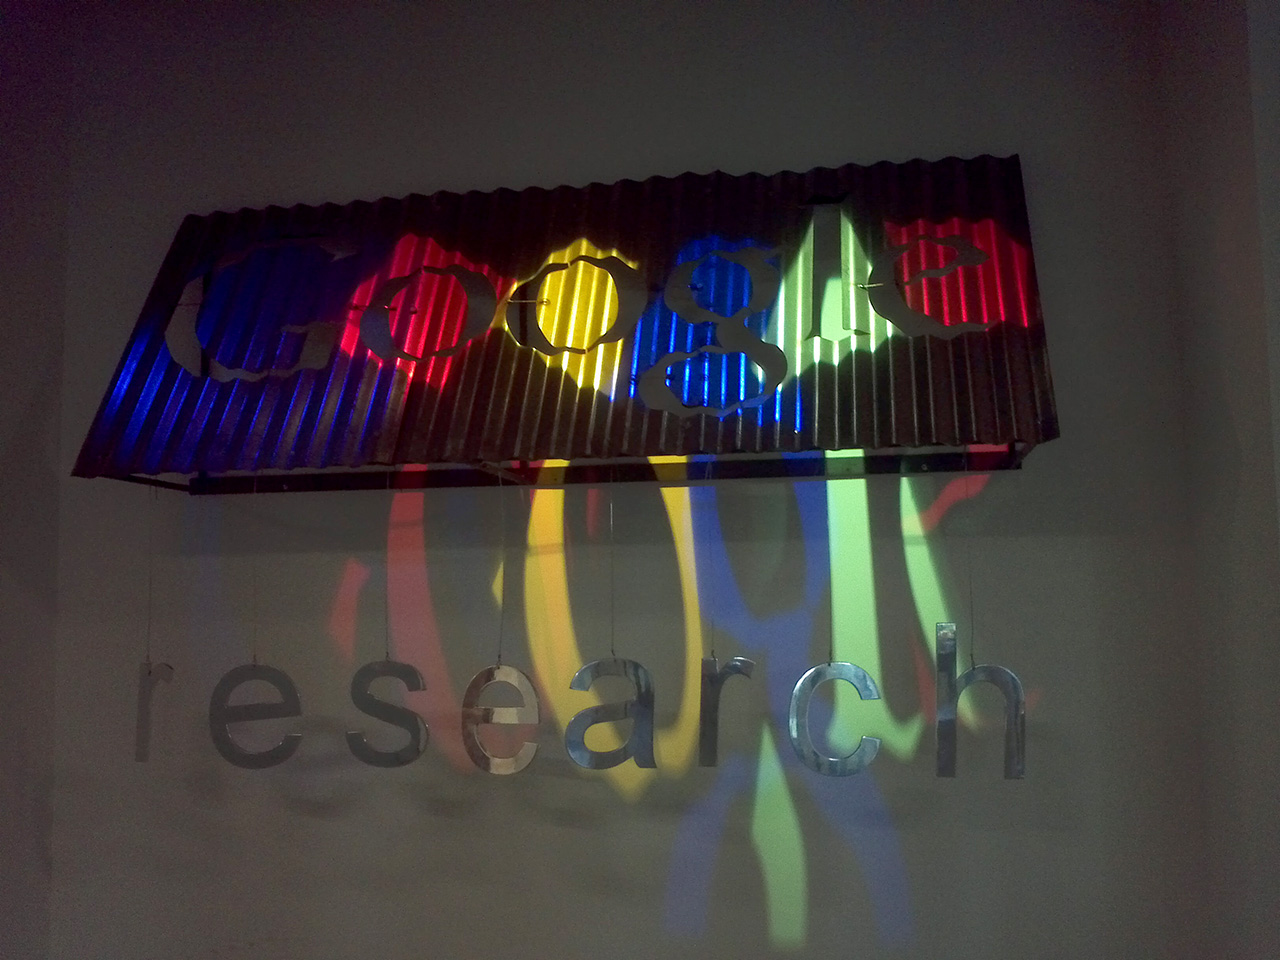 google research logo inside the building i was working in